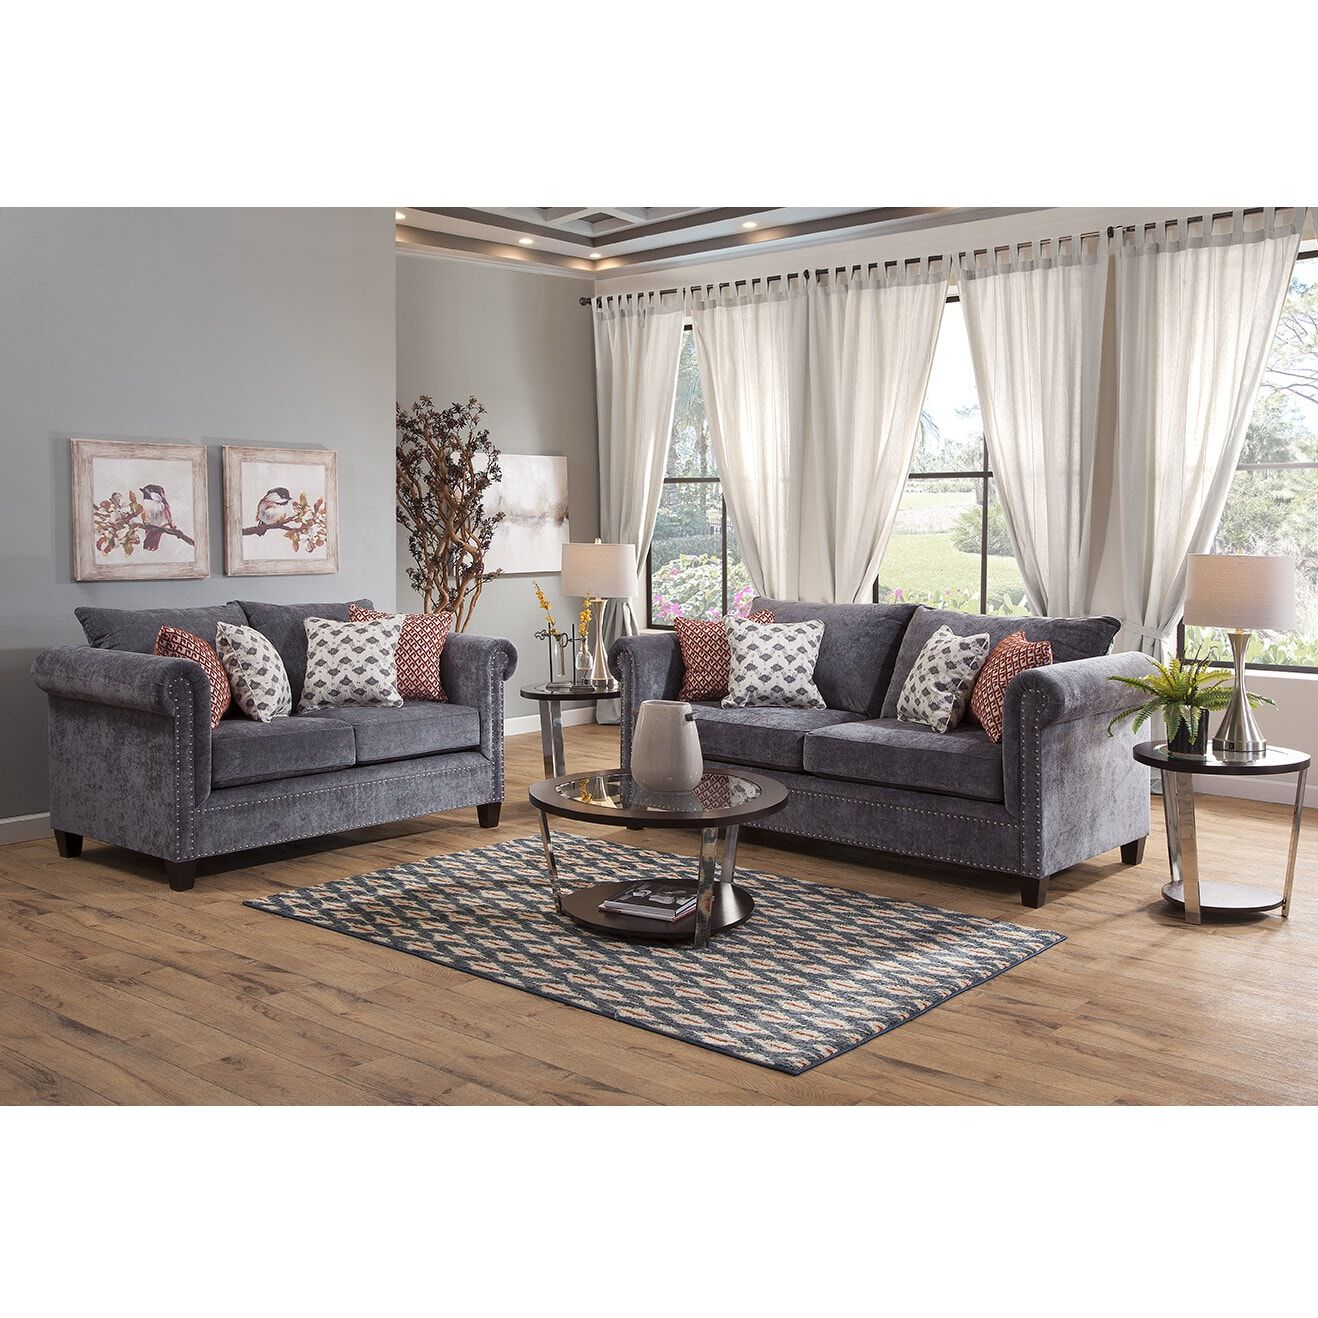 Rent To Own Woodhaven 2 Piece Royanna Living Room Collection At Aaron S Today